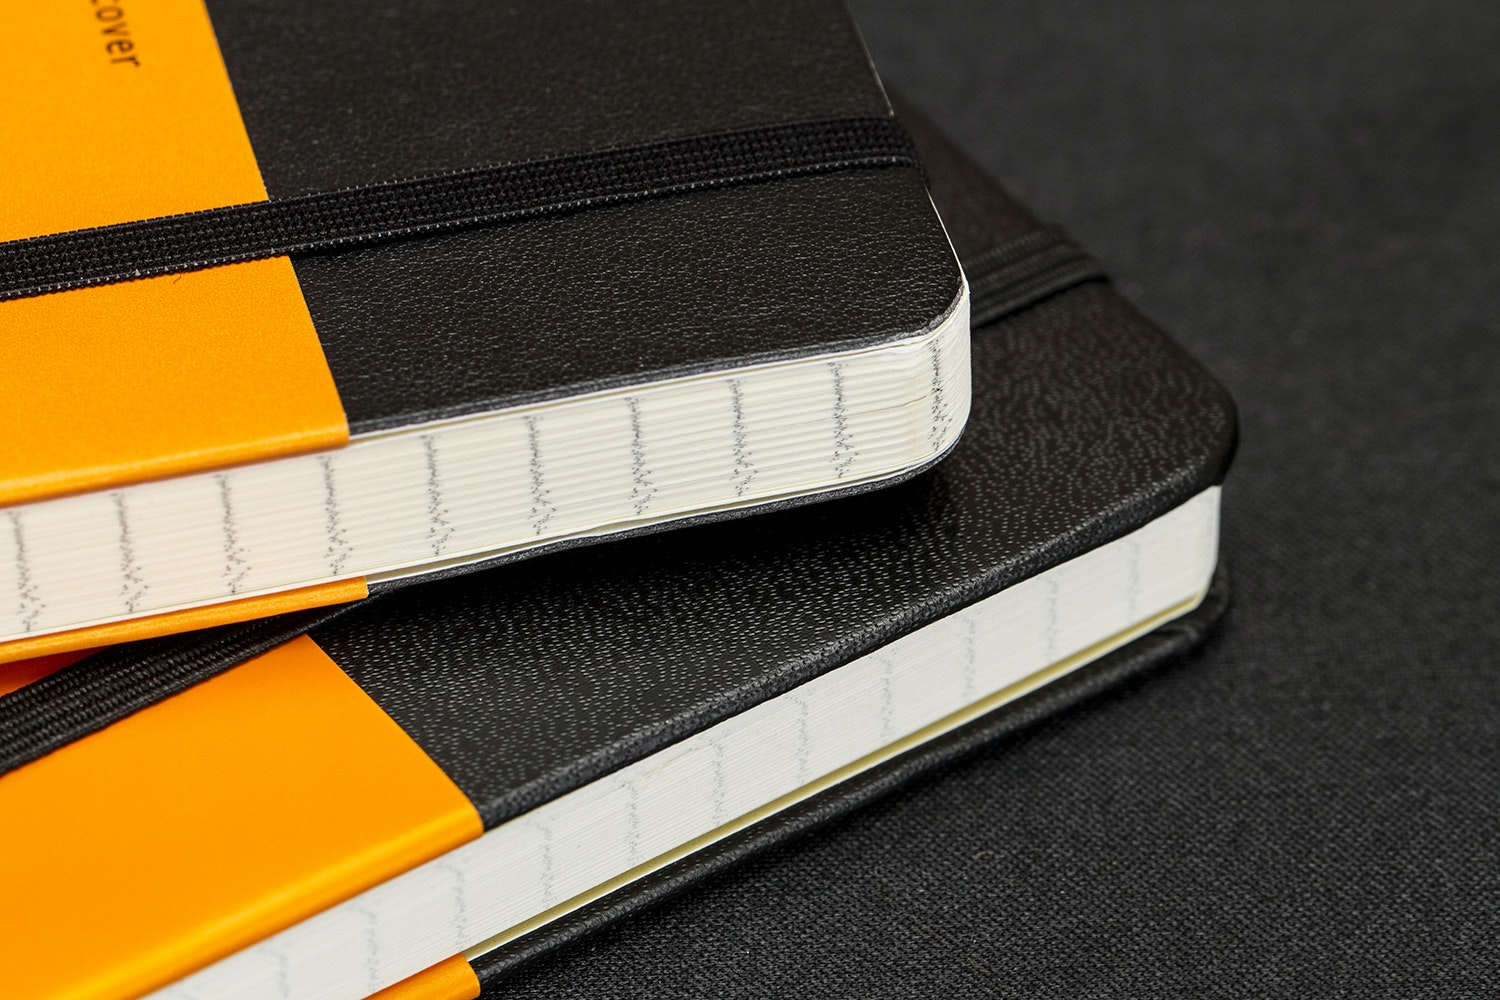 Moleskine Pocket Notebook (5-Pack)